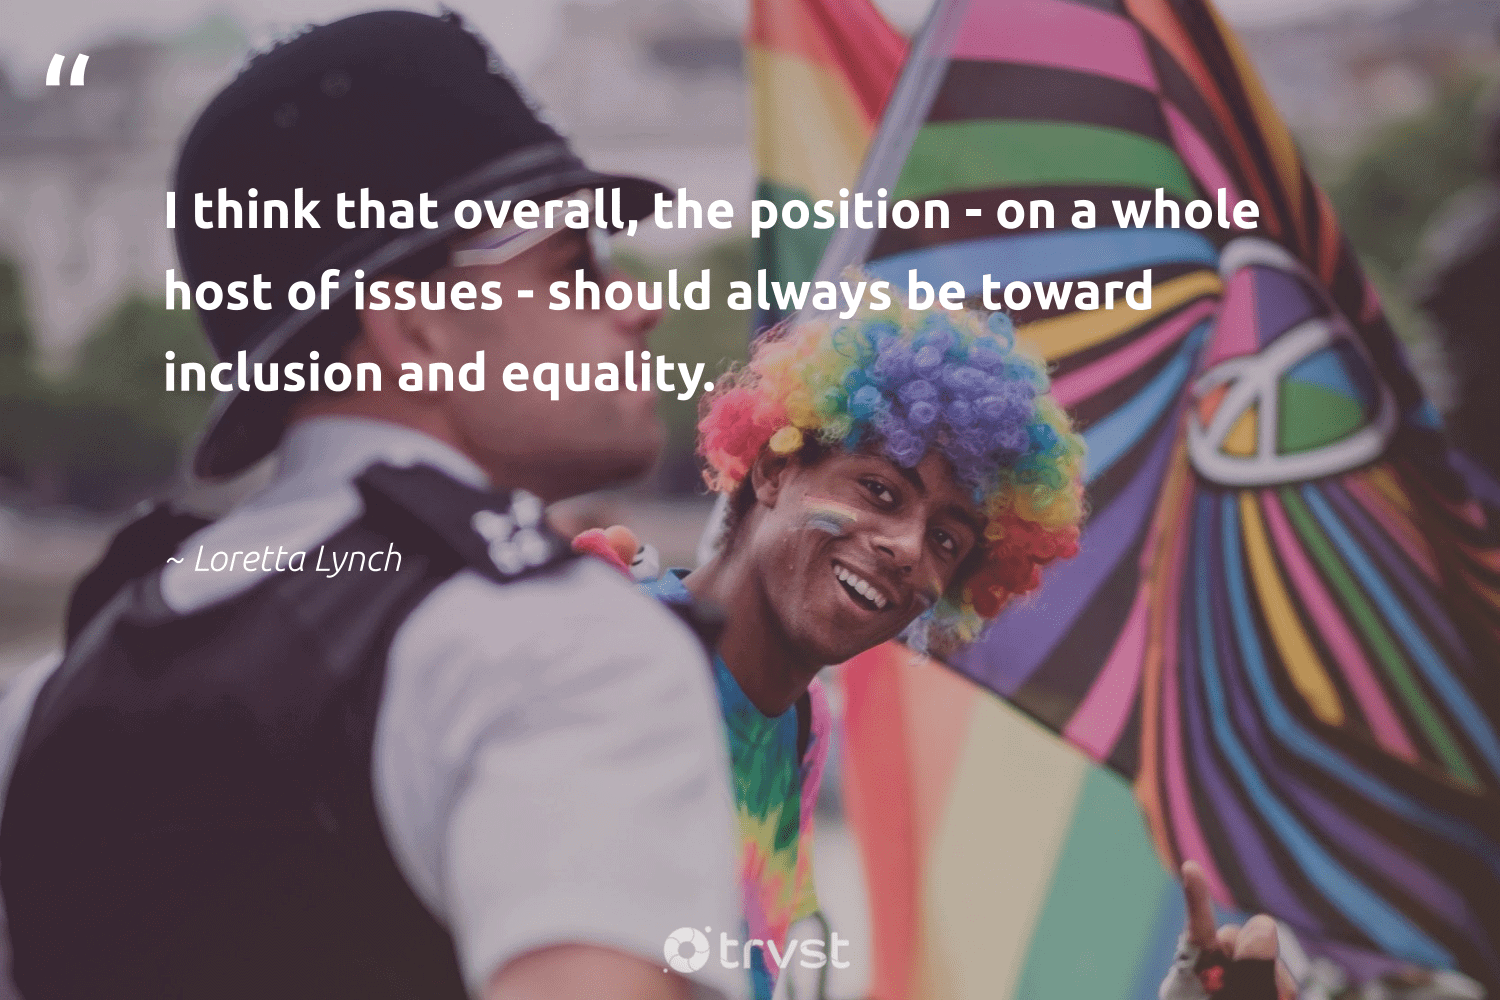 """""""I think that overall, the position - on a whole host of issues - should always be toward inclusion and equality.""""  - Loretta Lynch #trvst #quotes #equality #inclusion #equalopportunity #socialgood #makeadifference #beinspired #equalrights #giveback #bethechange #dotherightthing"""